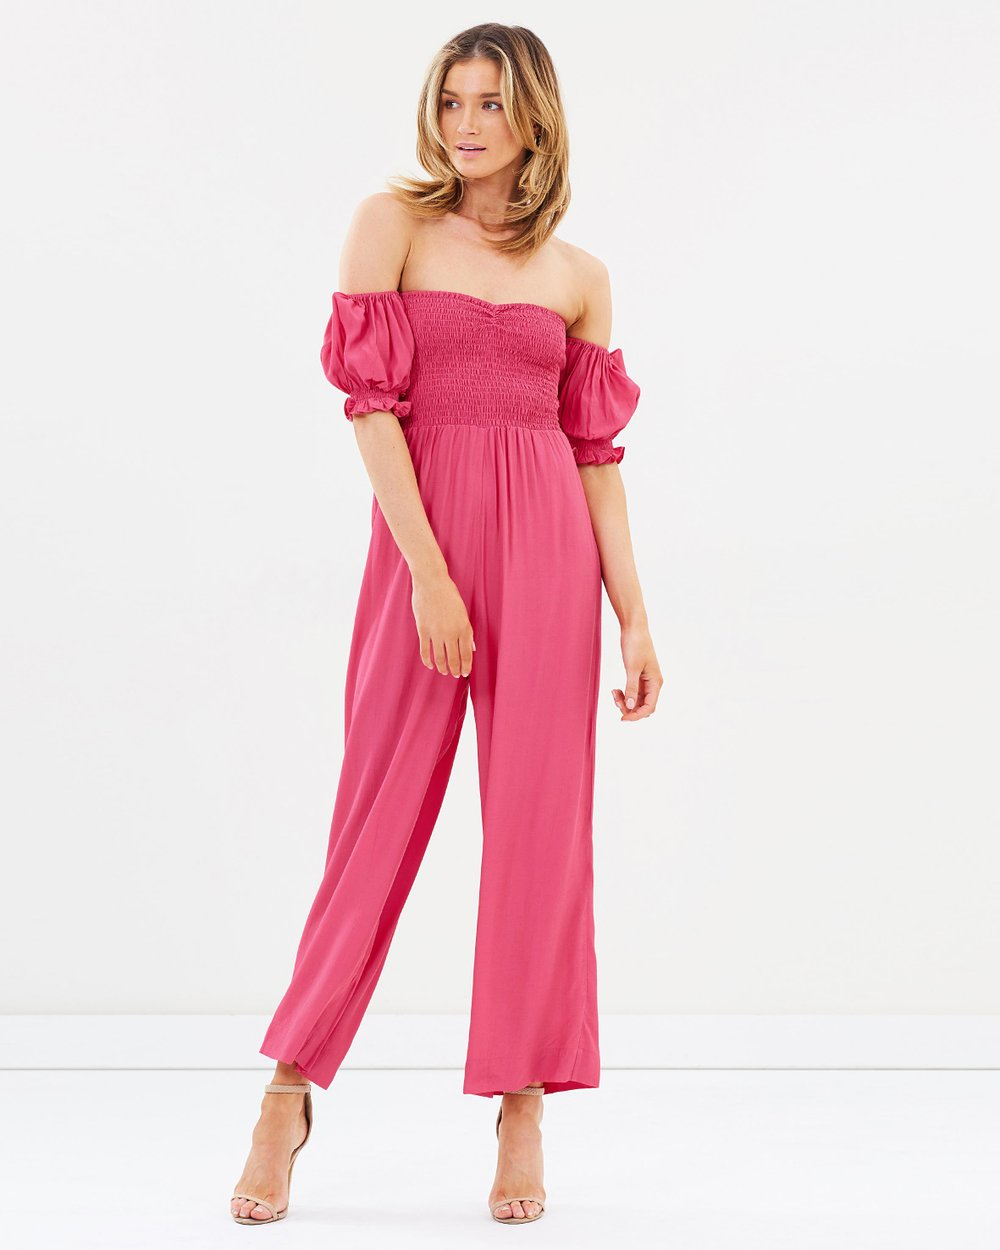 ae0ef7323e3e Breeze Jumpsuit by S W F Online